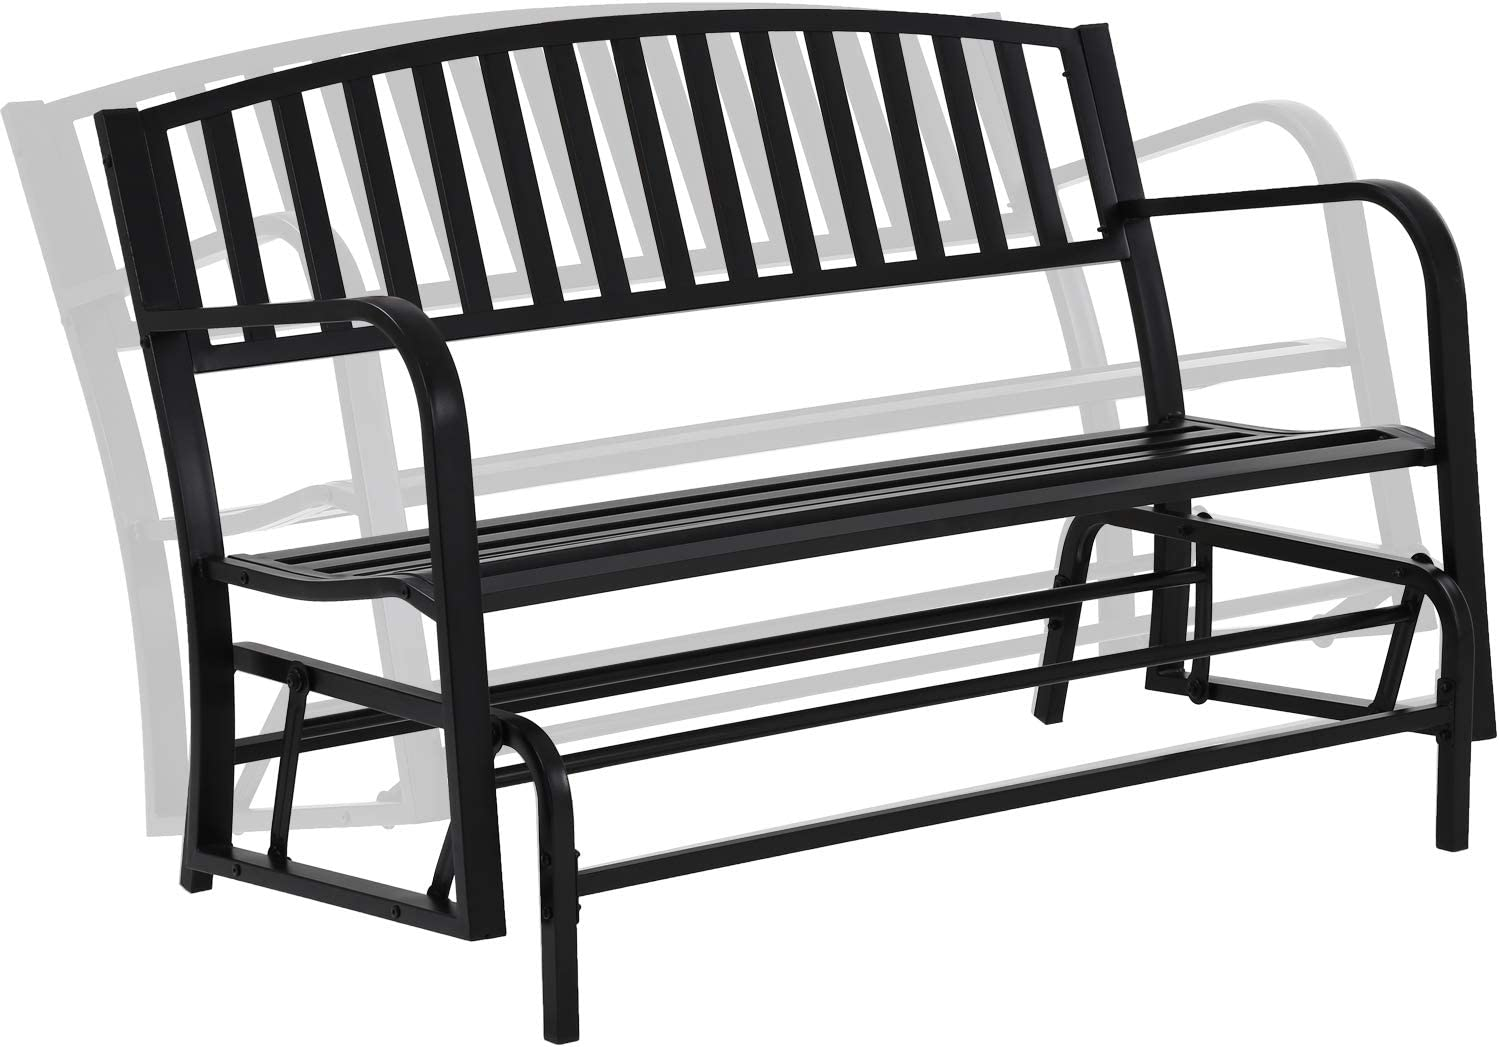 Patio Glider Bench Garden Bench for Patio Outdoor Bench Metal Bench Park Bench Cushion for Yard Porch Clearance Work Entryway